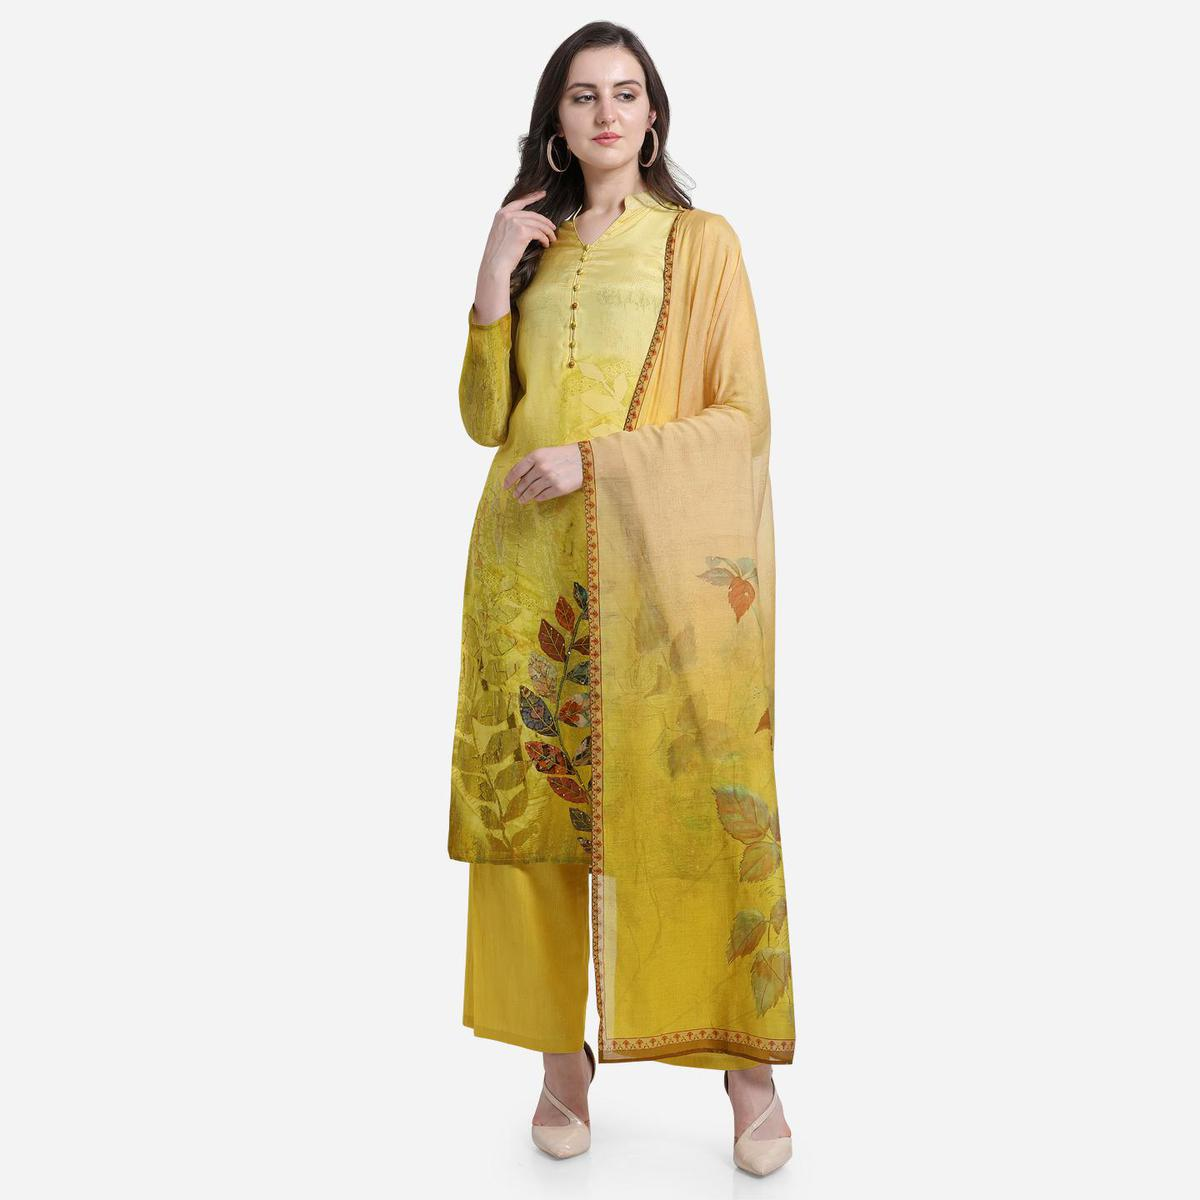 Stylee Lifestyle - Yellow Colored Casual Wear Printed Satin Dress Material